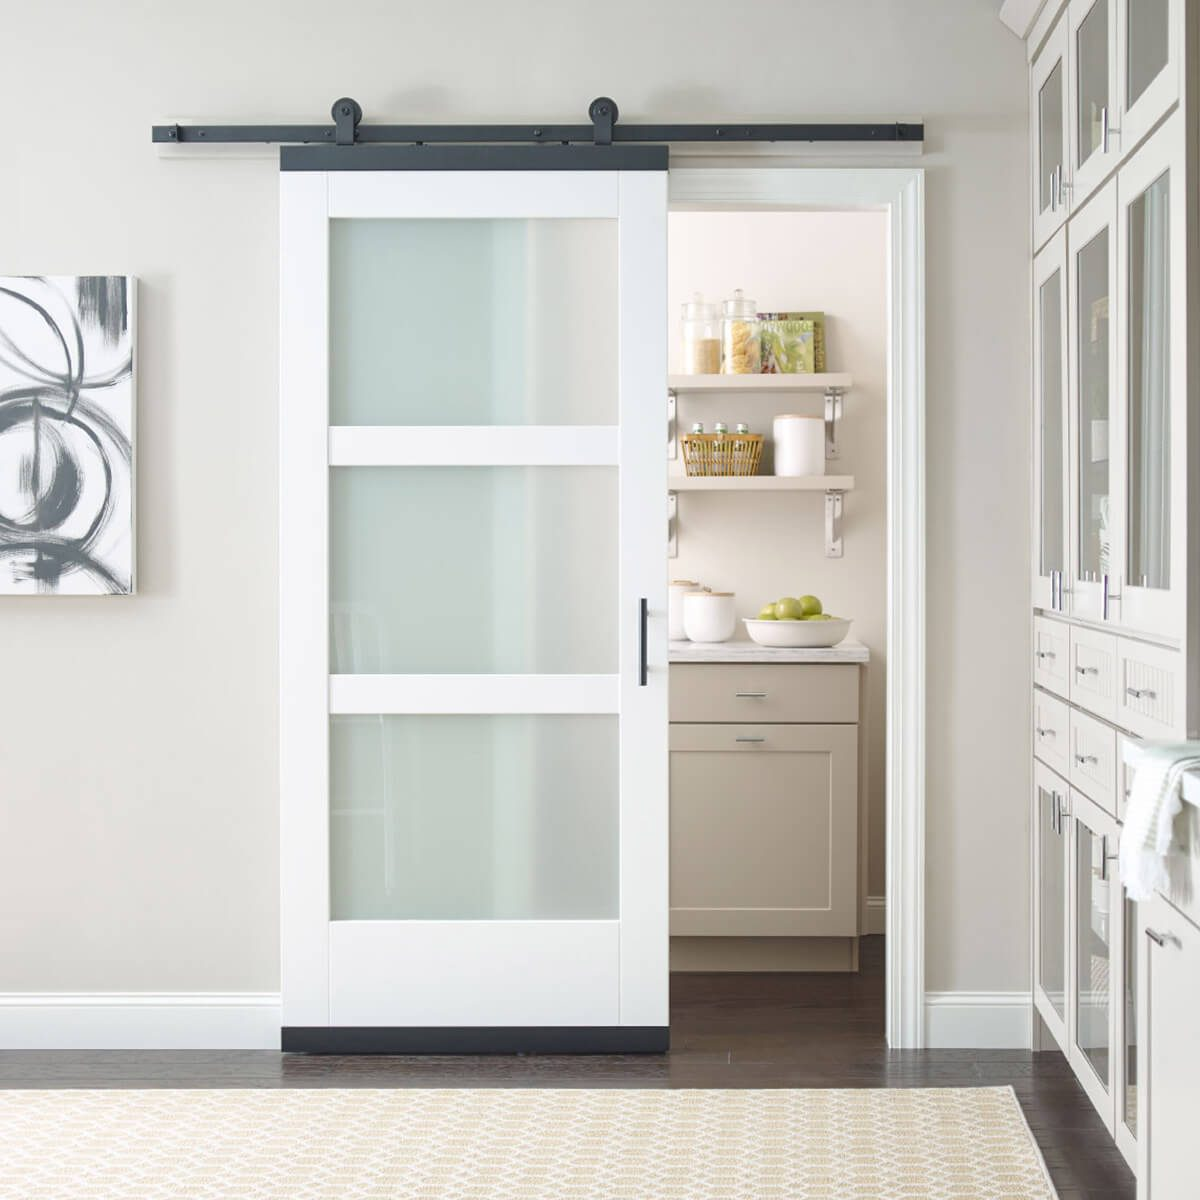 MODA Collection With Translucent Glass Jeld Wen Design Glide Door